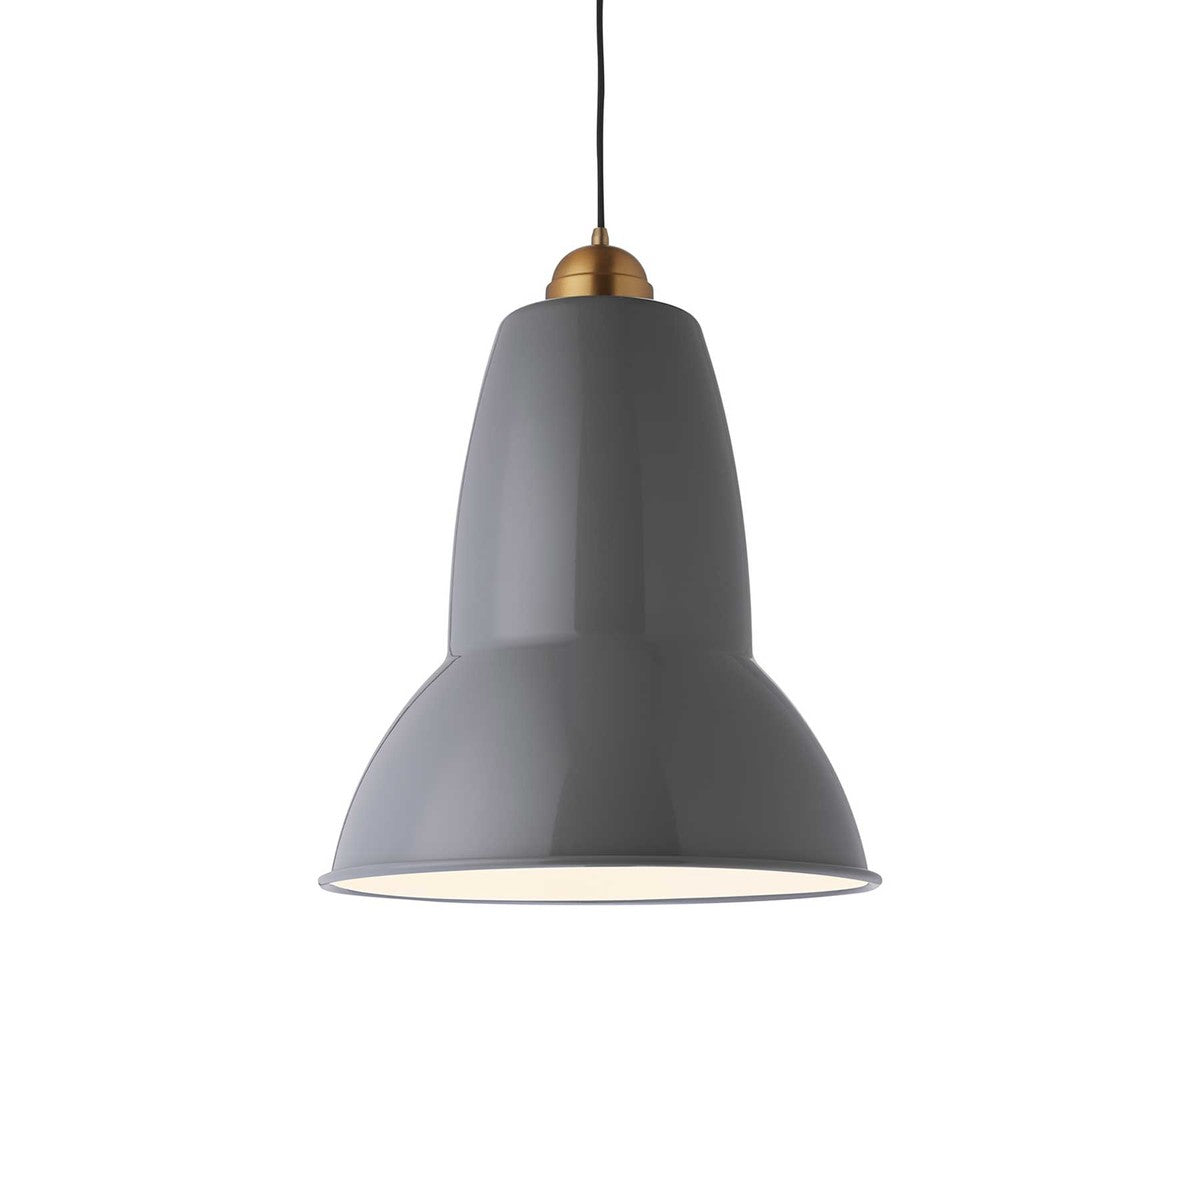 Anglepoise Giant 1227 pendant light in elephant grey with brass detail from Warehouse Home